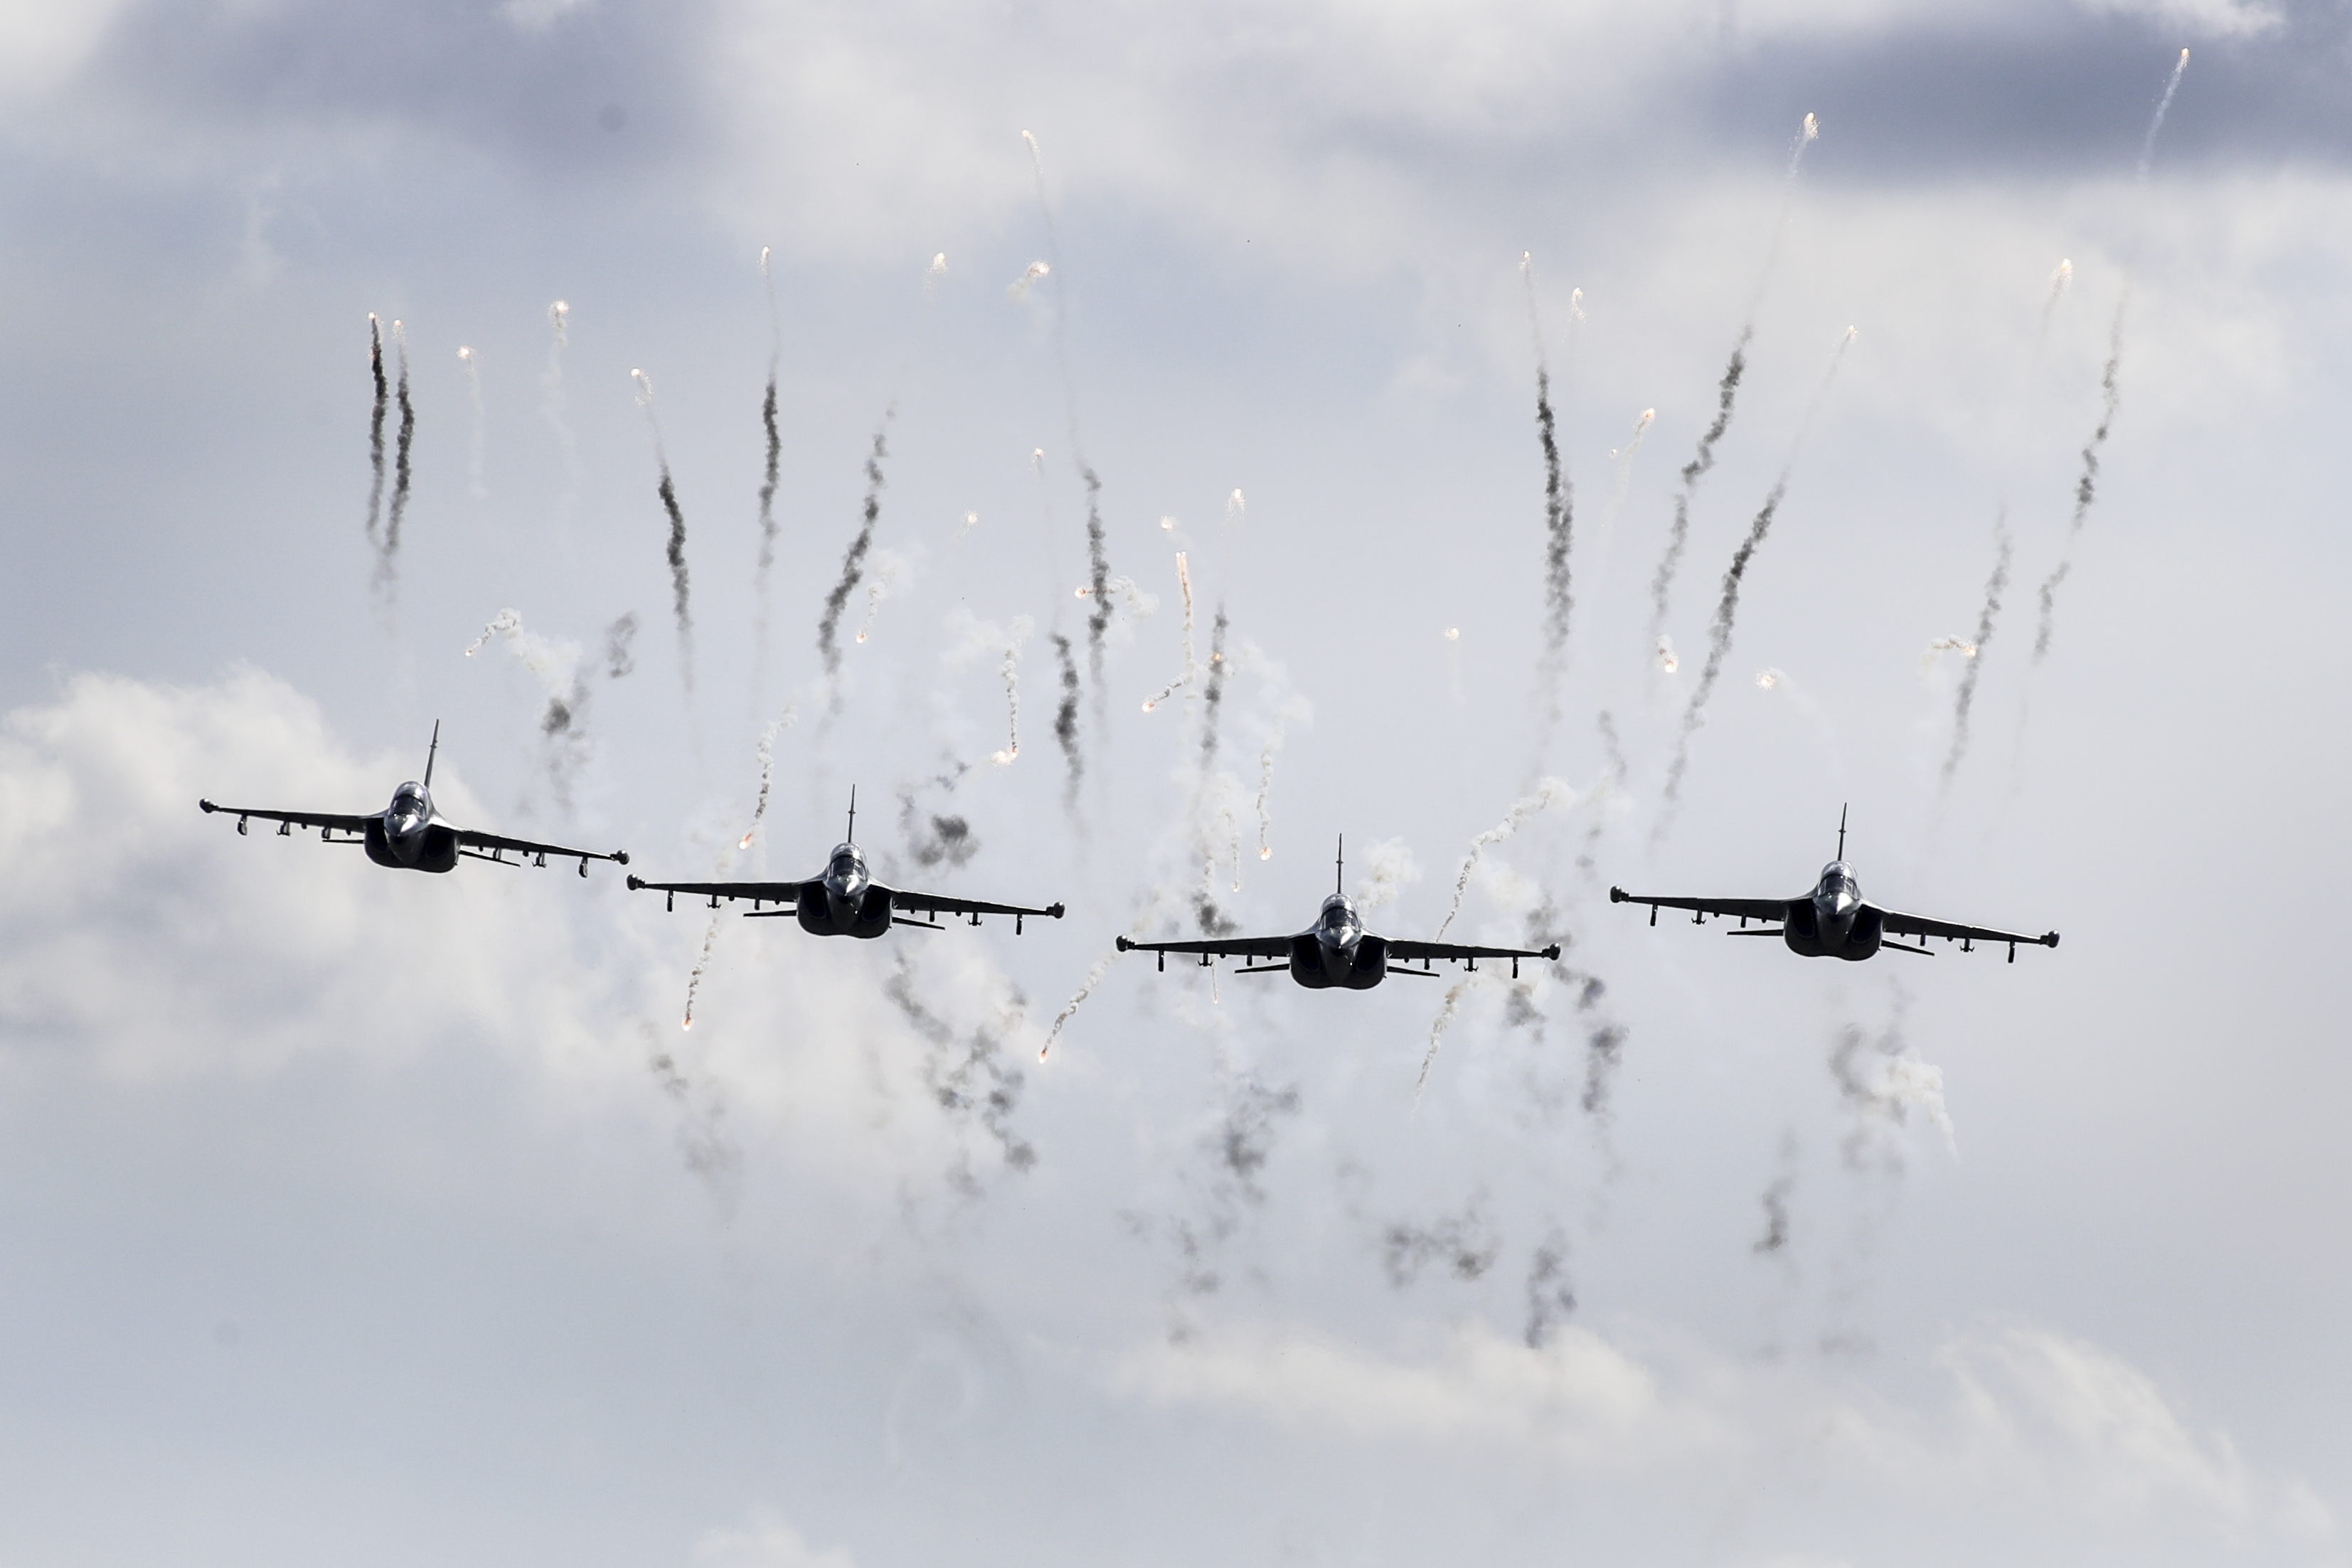 Belarusian military jets fly during military exercises. The Zapad 2017 military drills are held jointly by Russian and Belarusian militaries at several firing ranges in both countries. (Sergei Grits/AP)